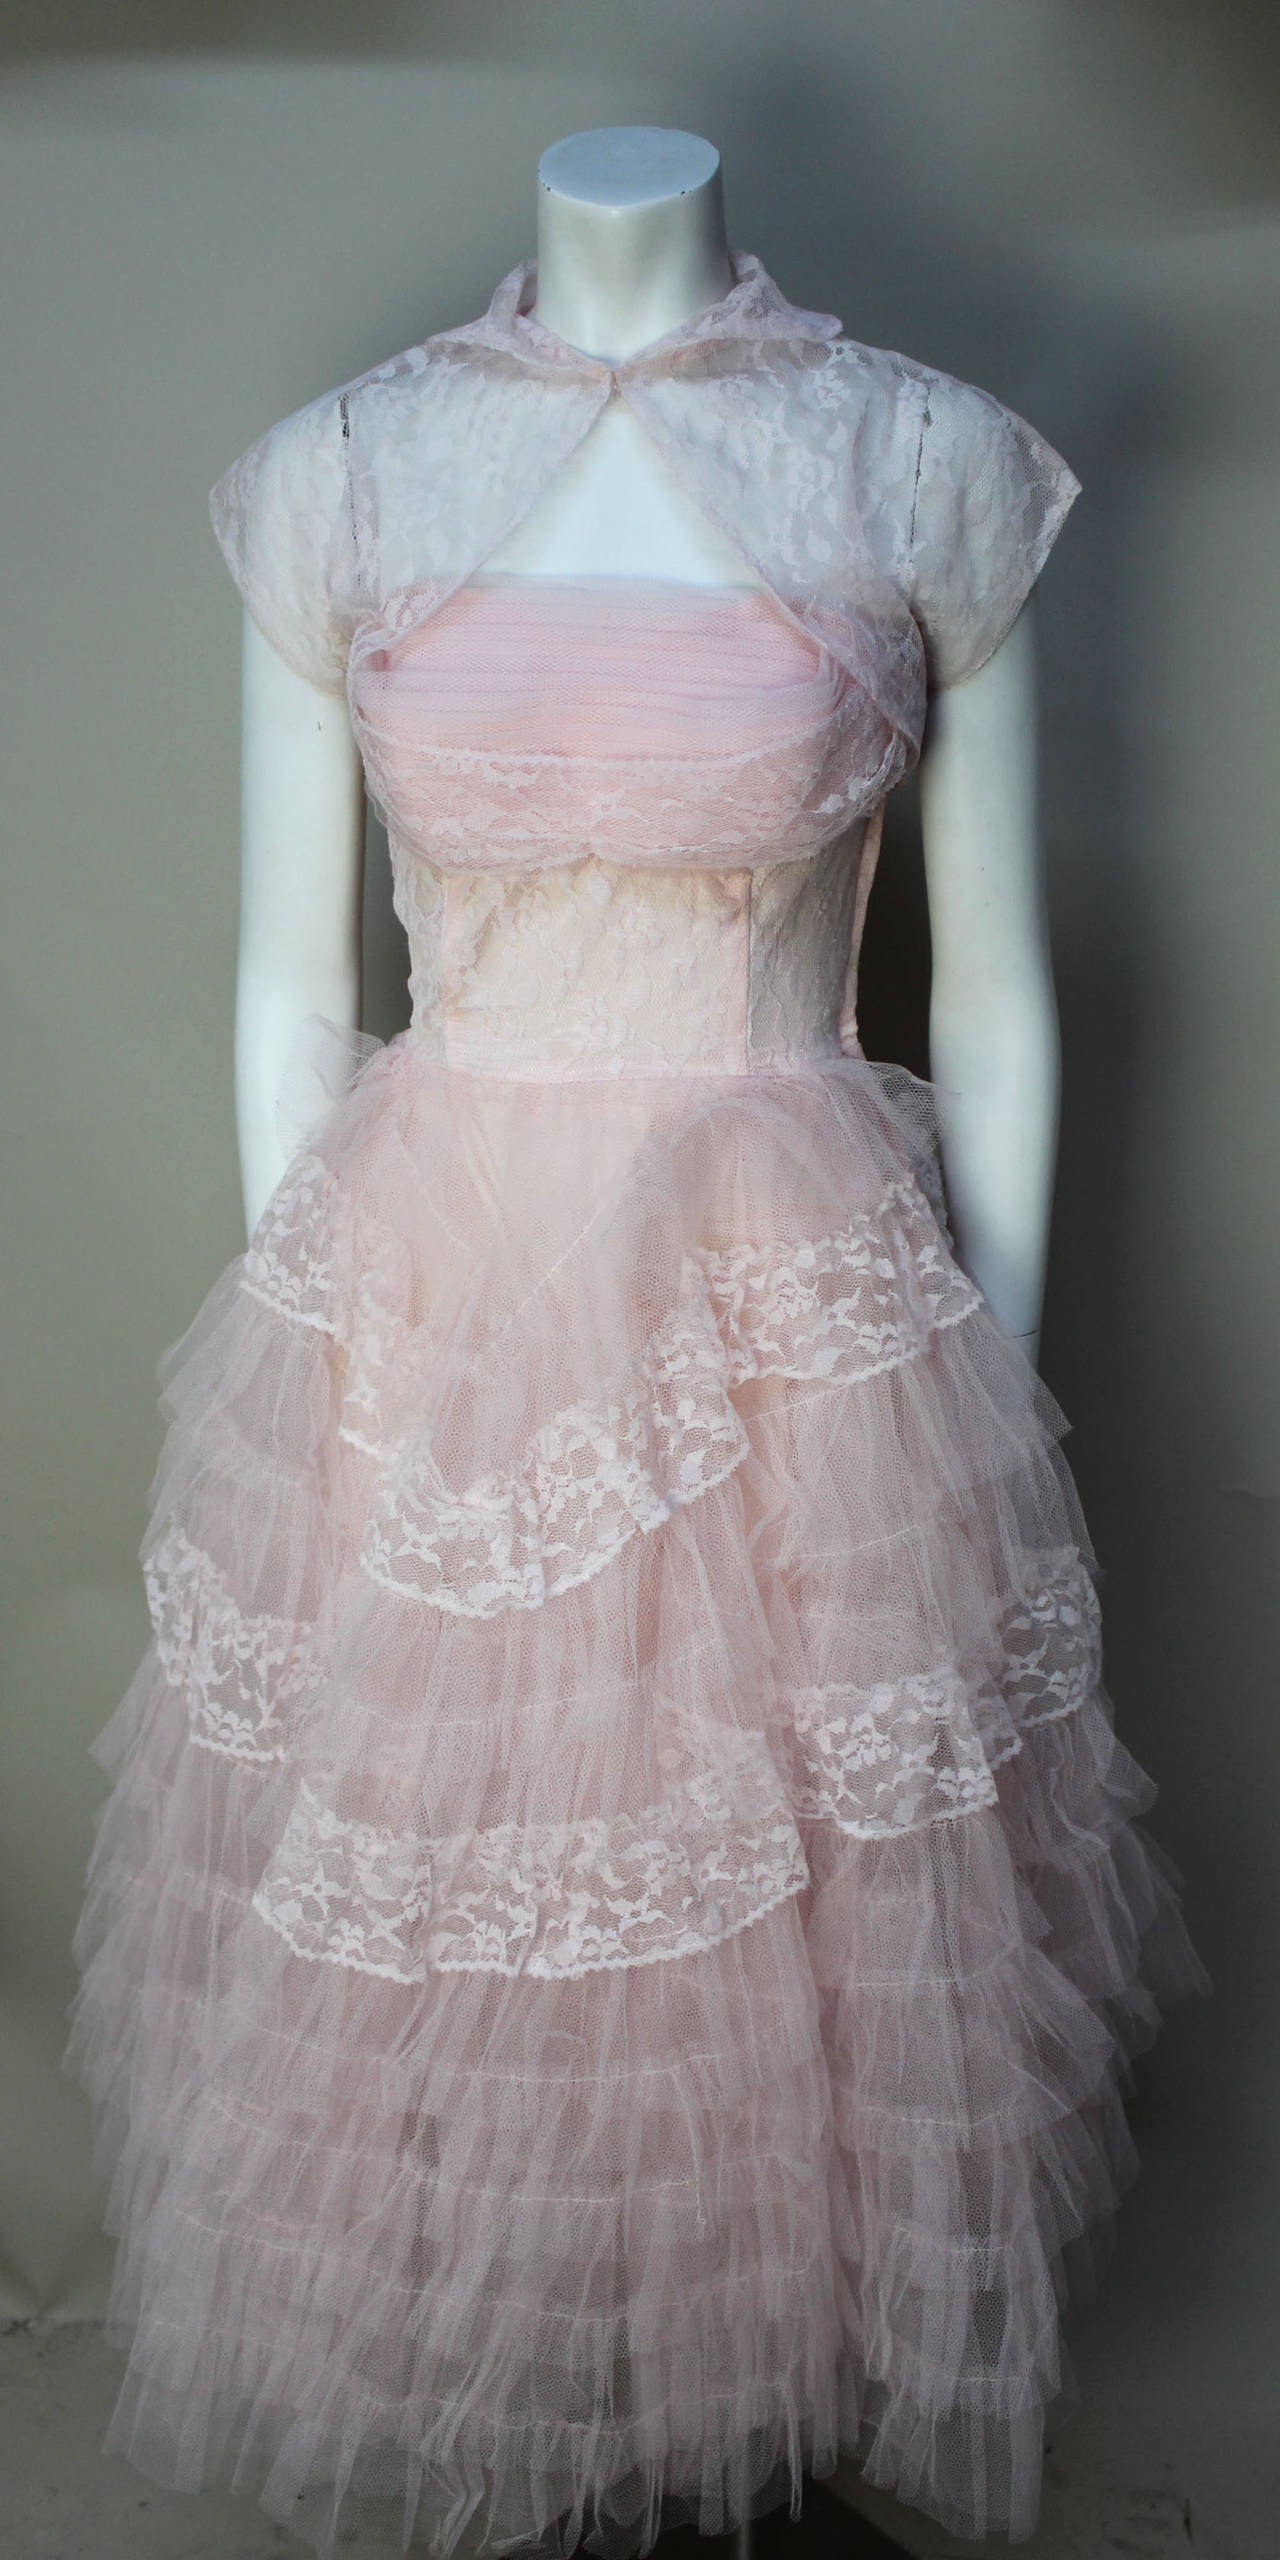 Stunning Never Worn 1950s Pink Tulle Evening Dress with Lace Bolero 2